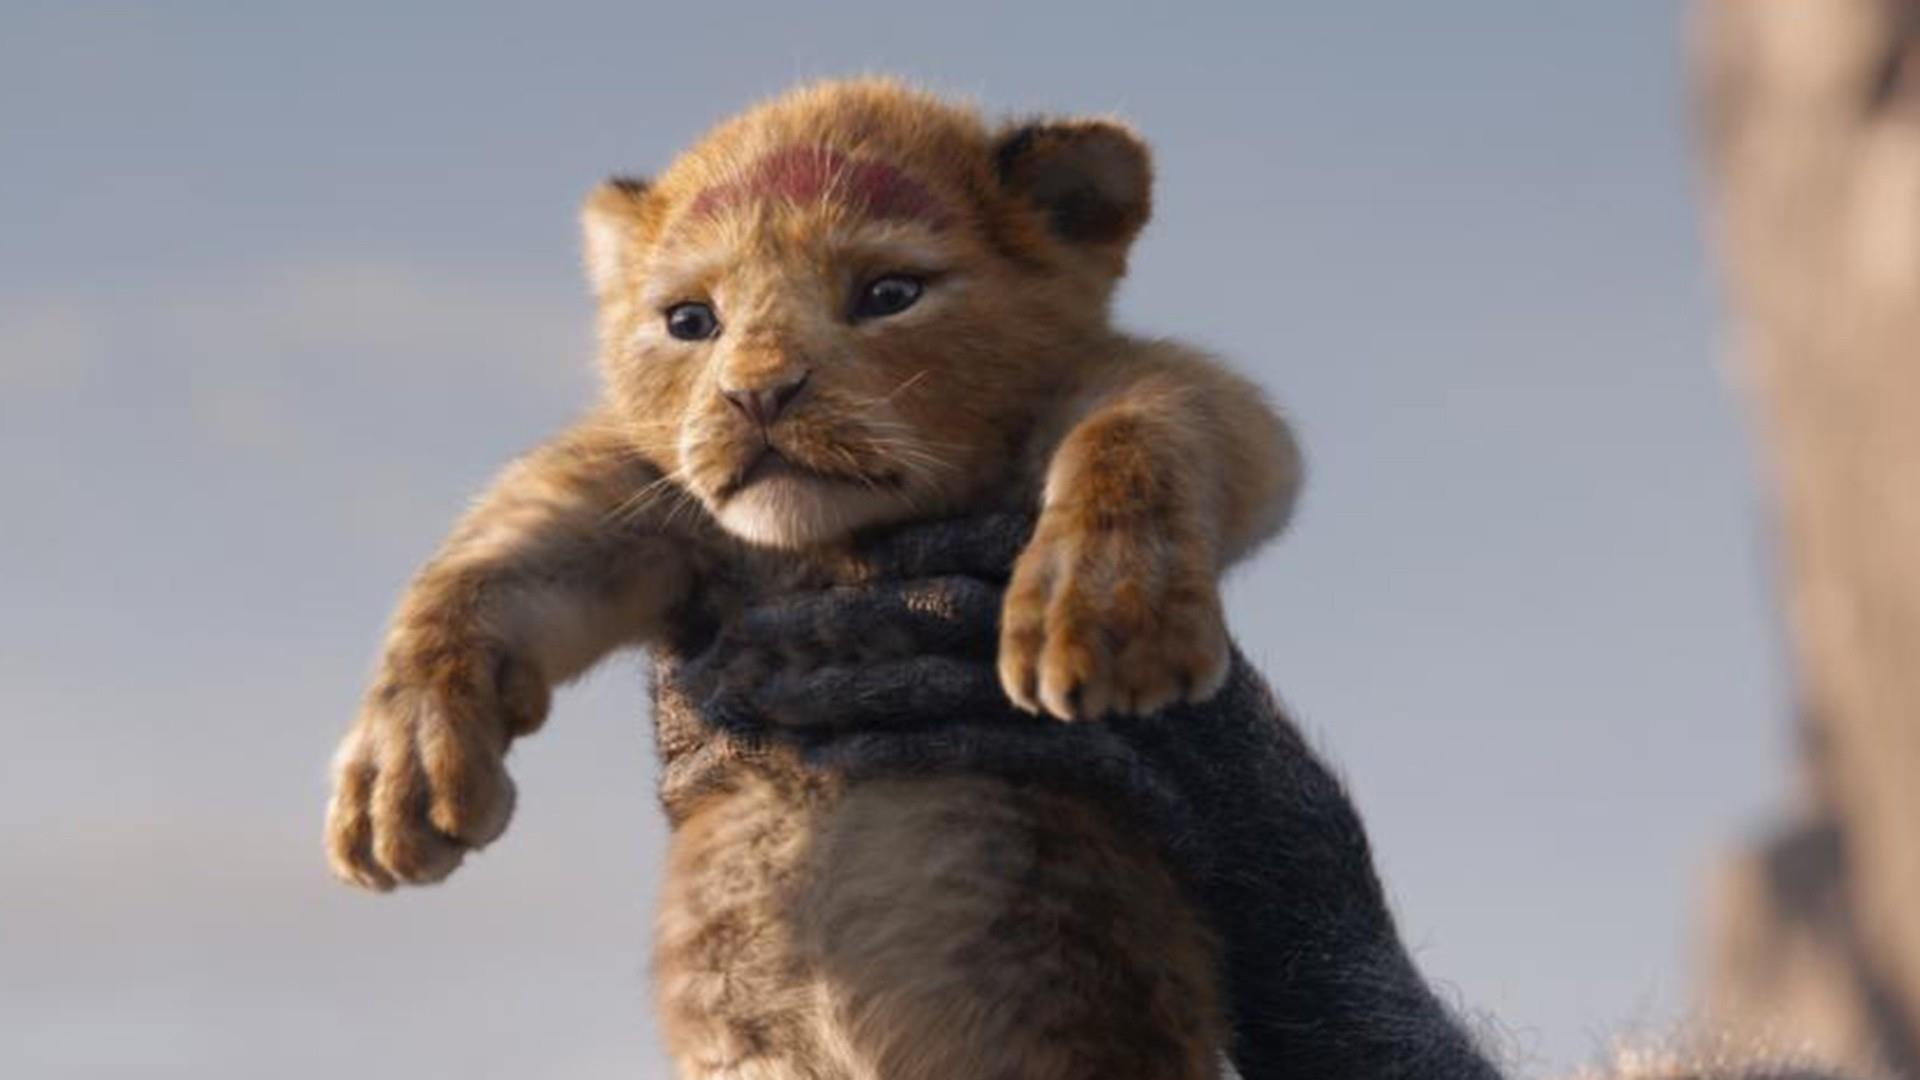 Best movies to check out this summer: 'Lion King' and more